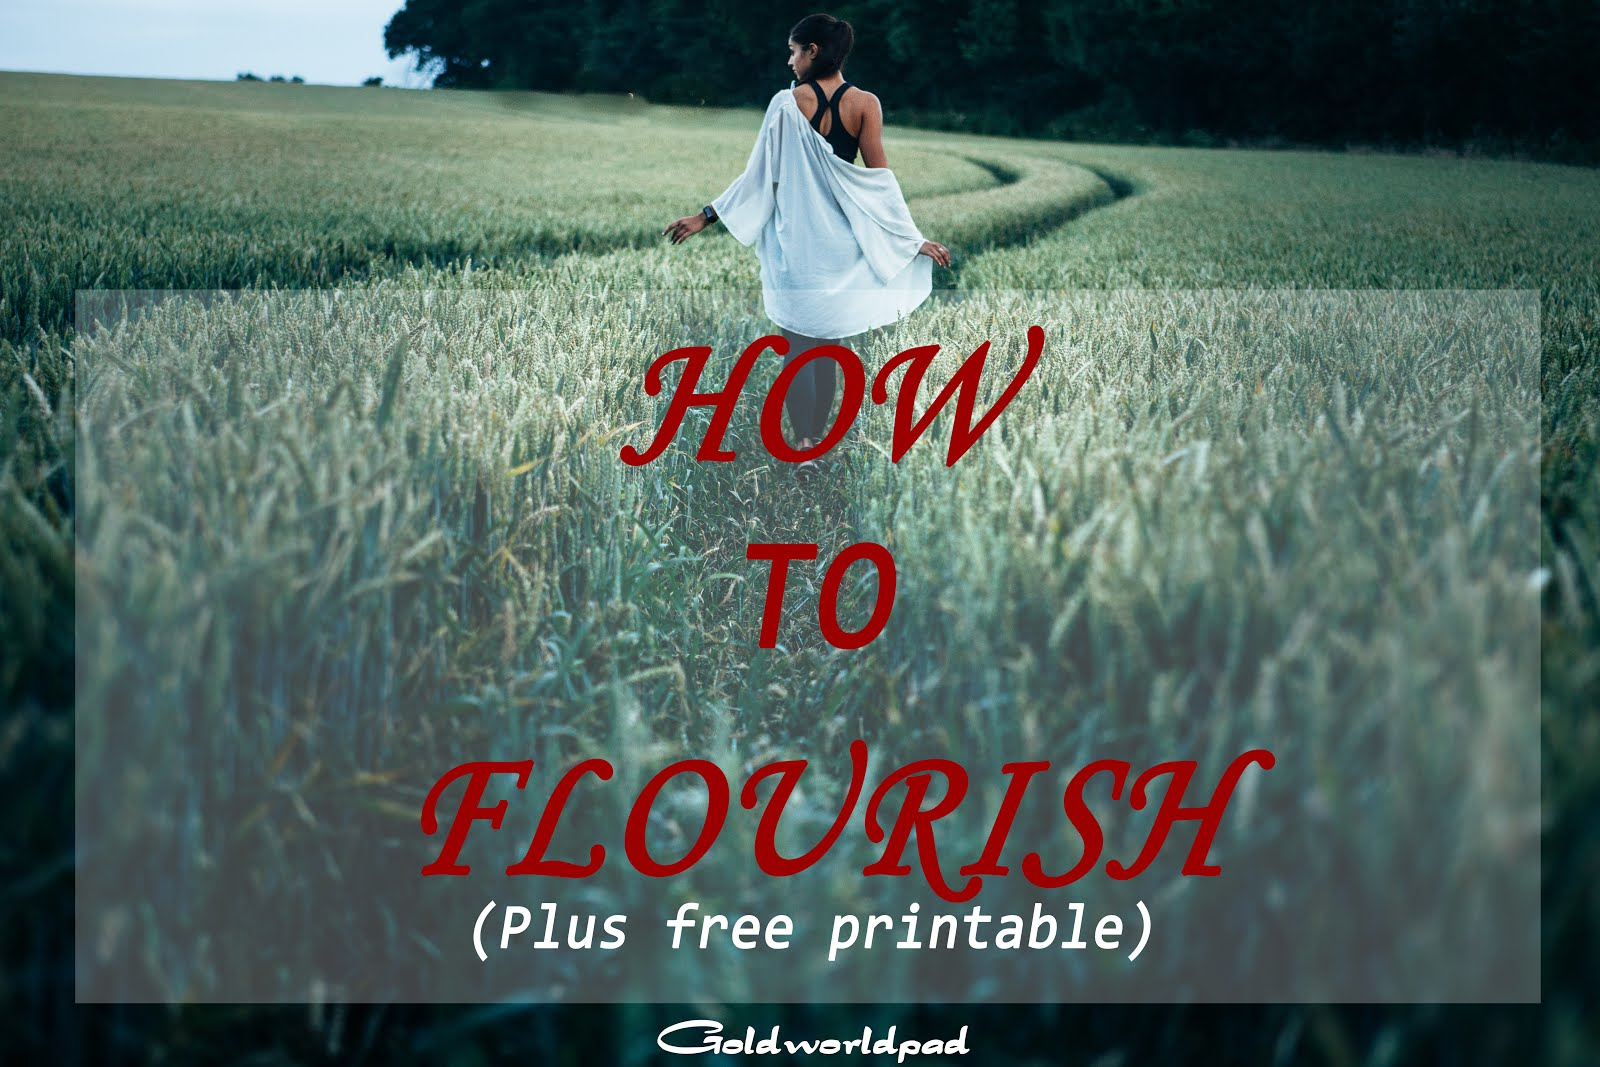 How to flourish or thrive as a Christian